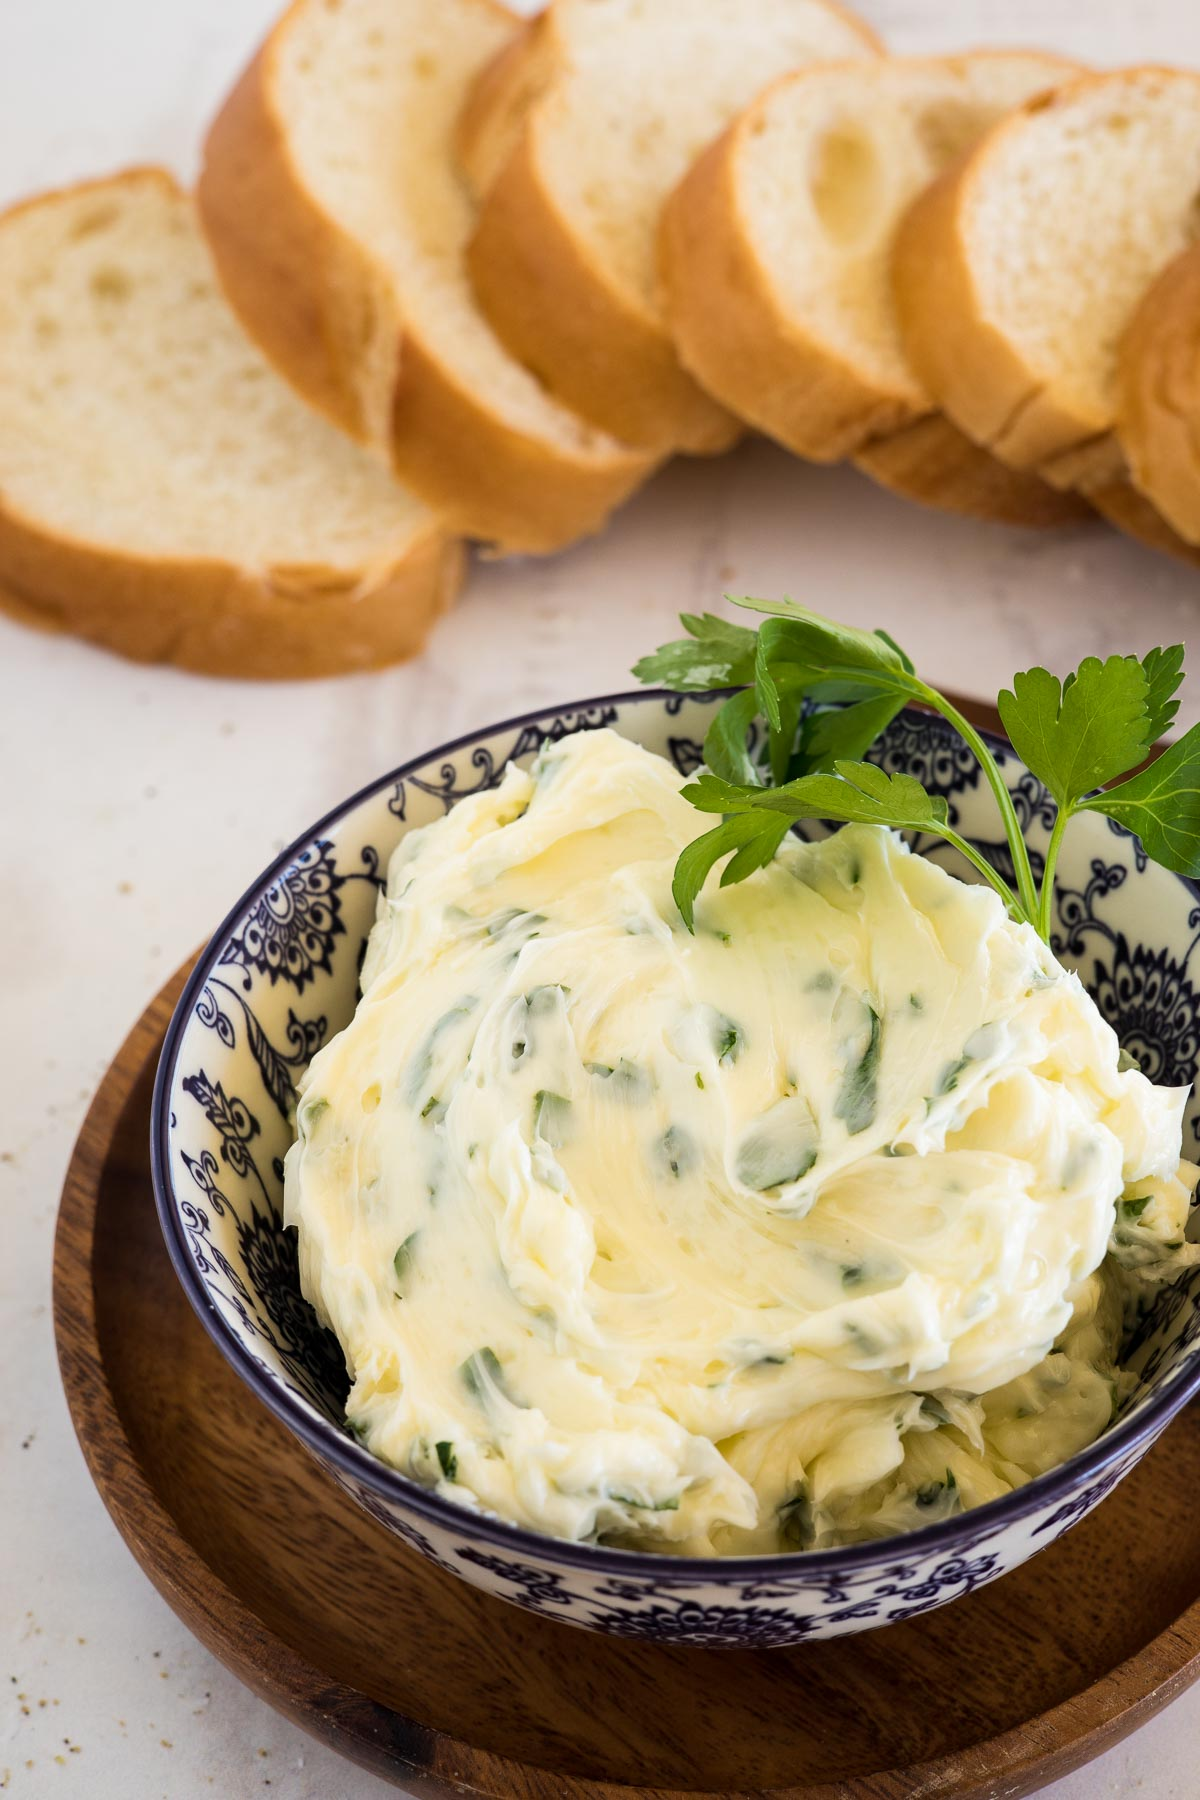 Garlic Butter in a dish with bread.